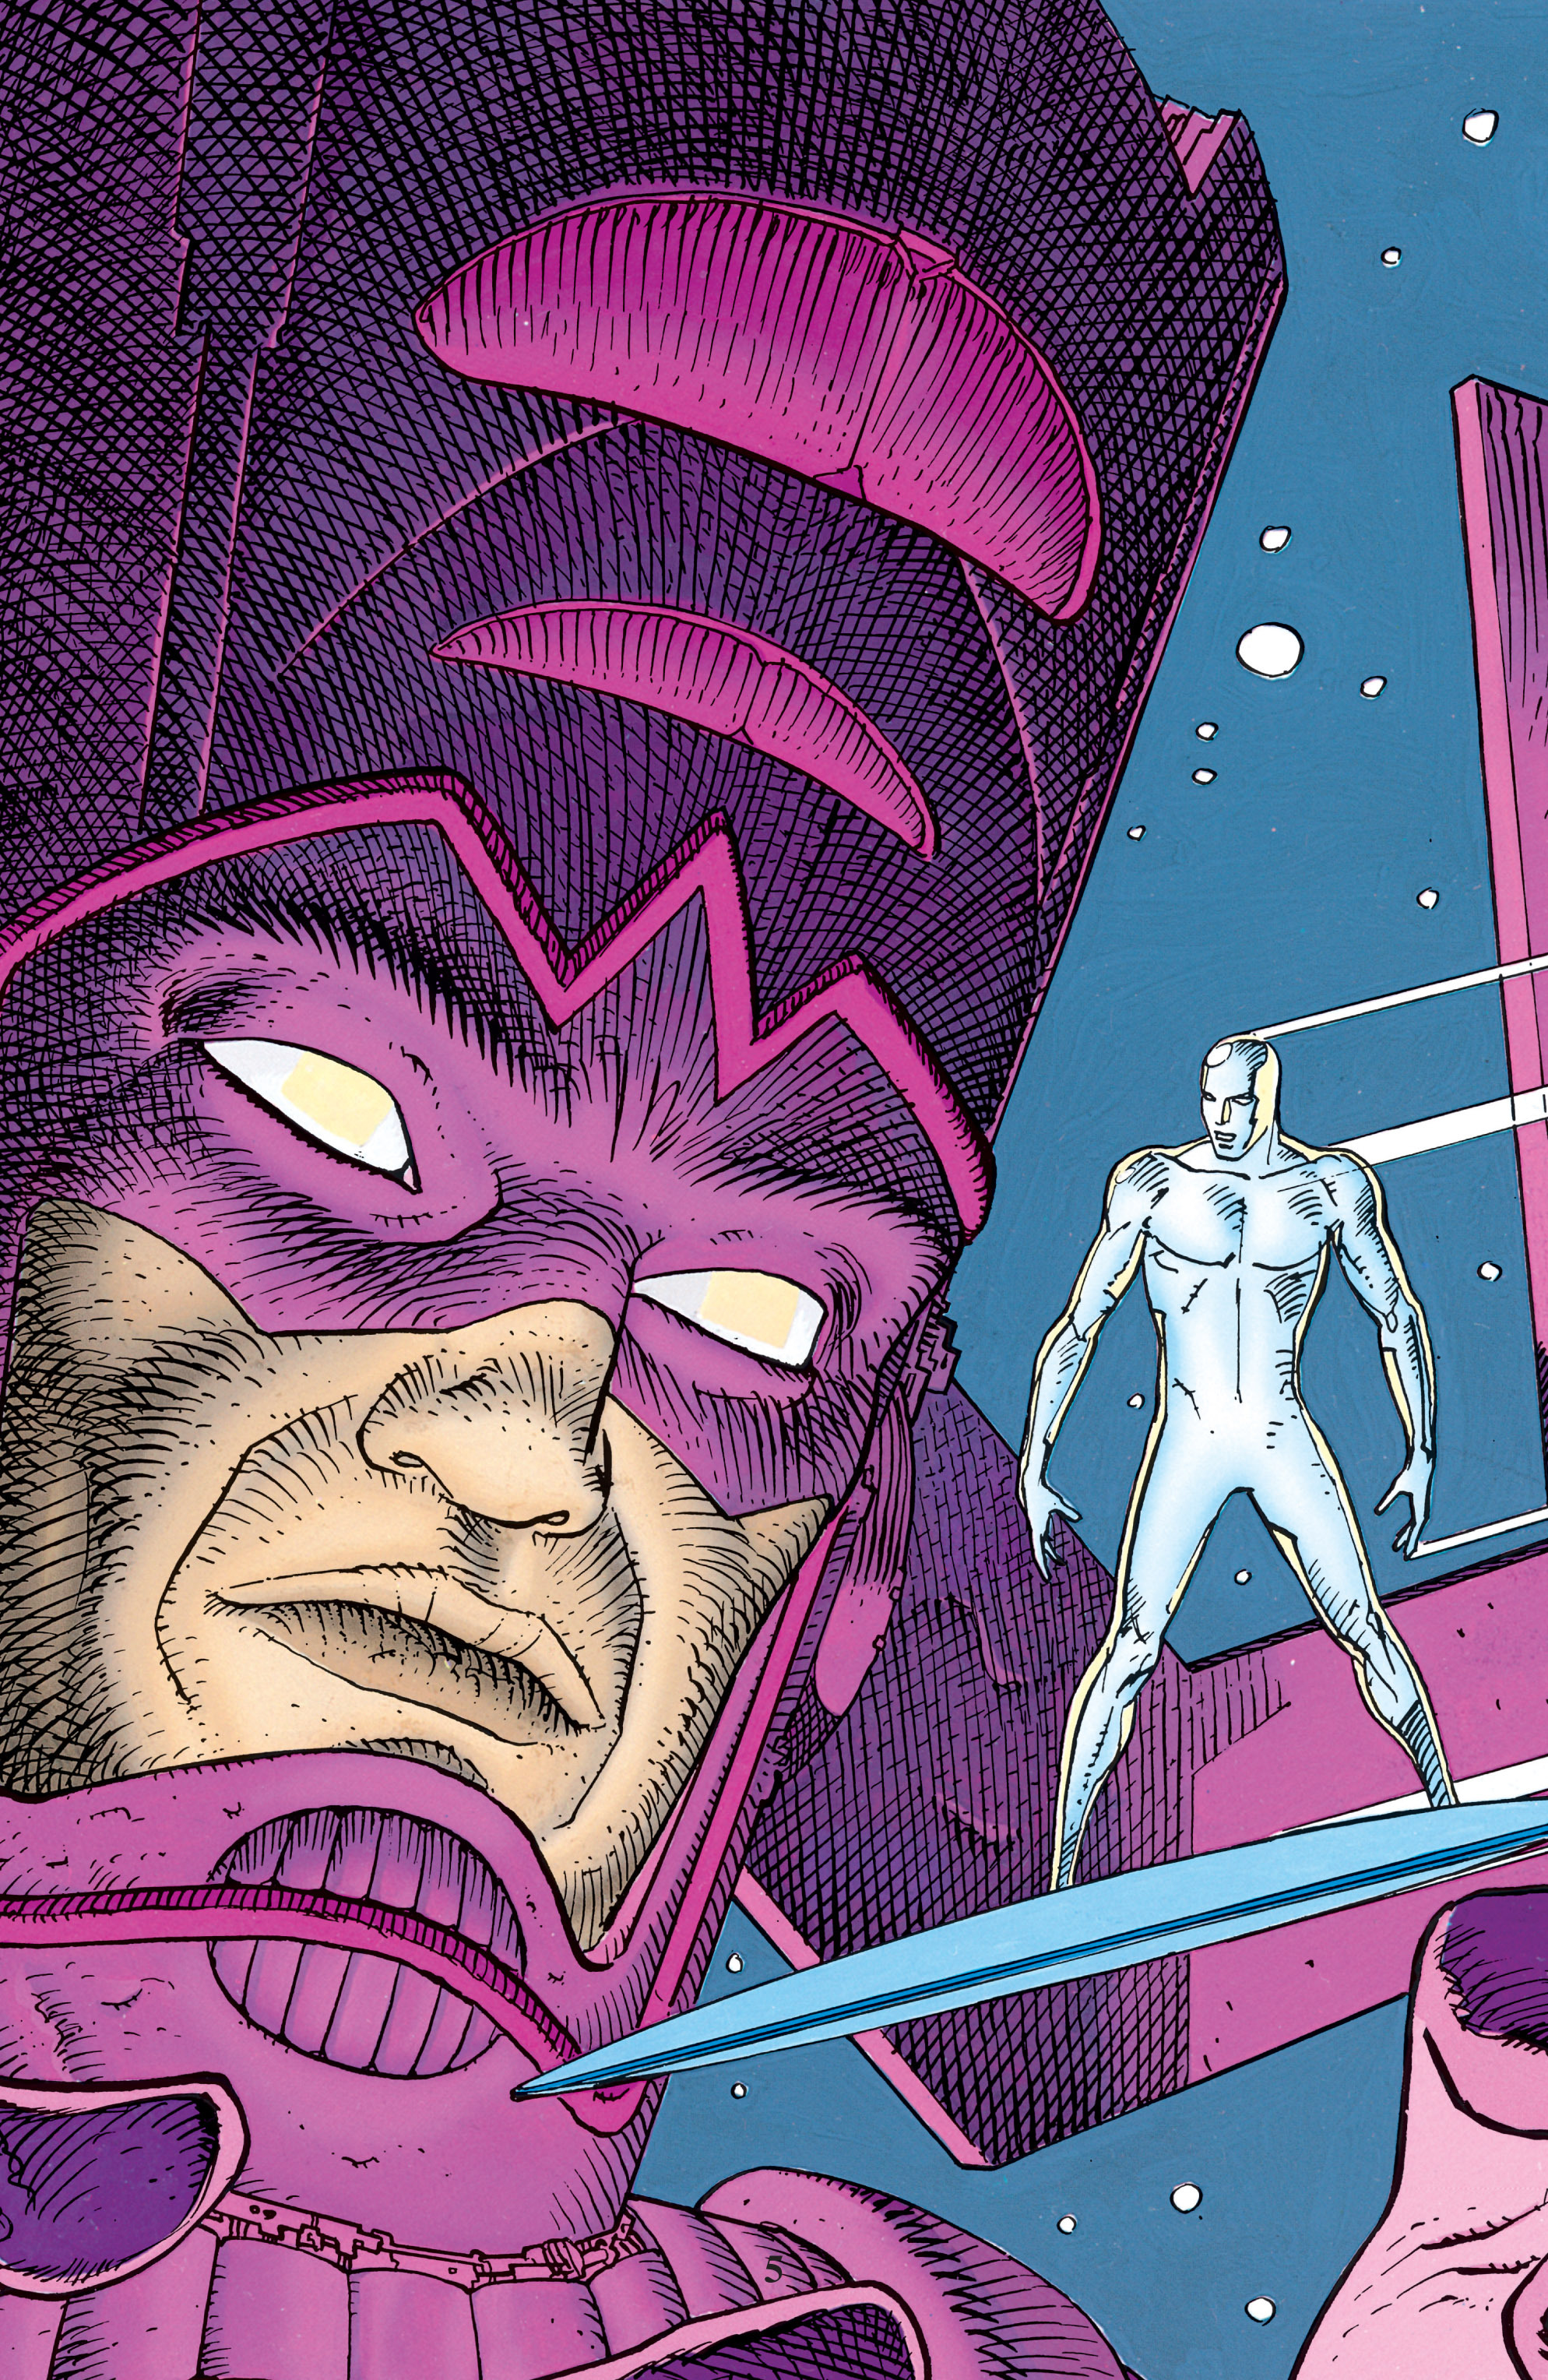 Read online Silver Surfer: Parable comic -  Issue # TPB - 4